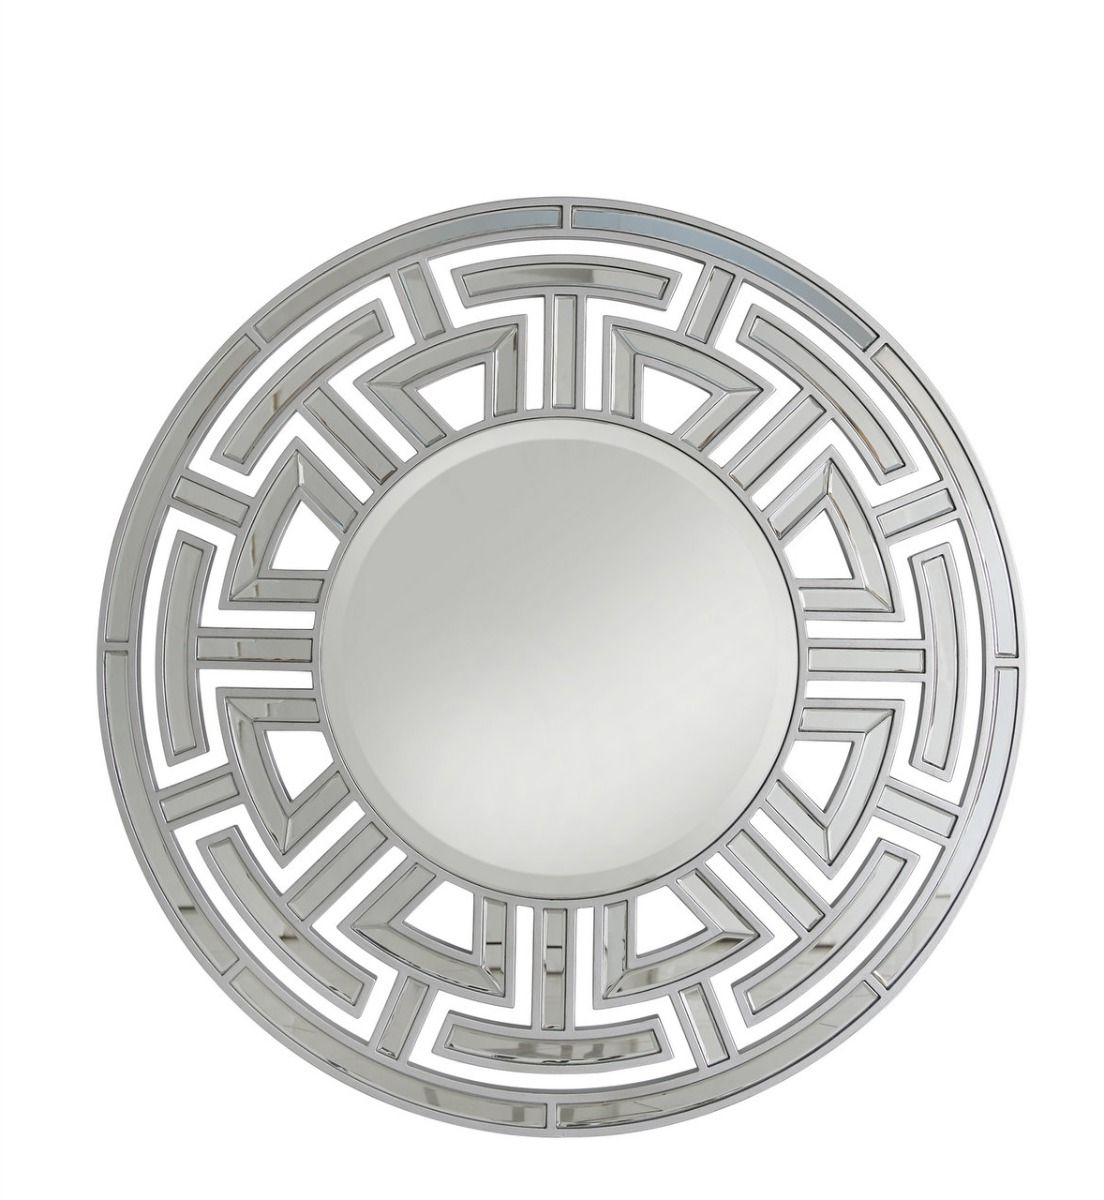 The Louis Round Wall Mirror Silver With Most Up To Date Round Silver Wall Mirrors (View 20 of 20)